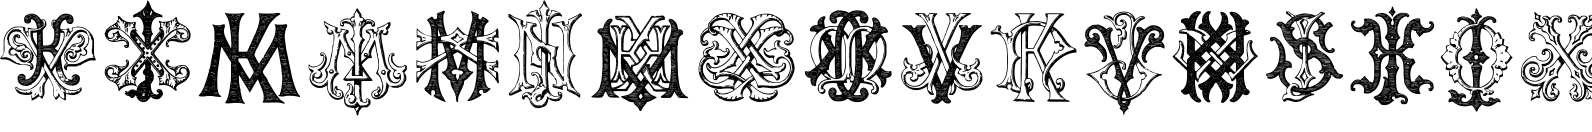 Intellecta Monograms IZKX